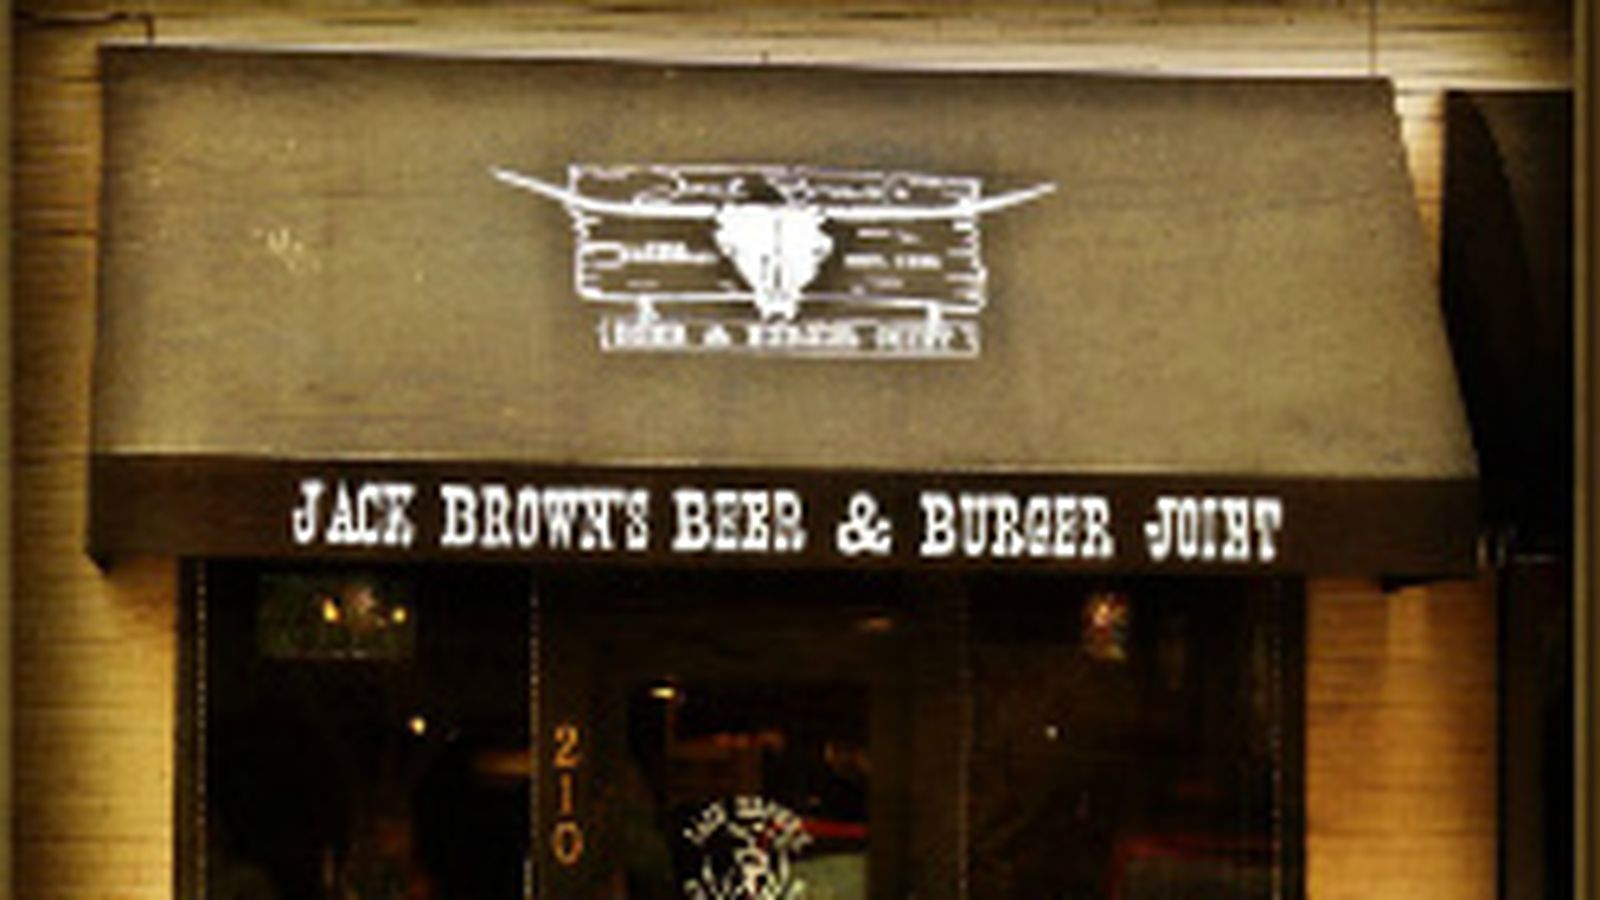 Virginia S Jack Brown S Beer And Burger Joint Expanding To